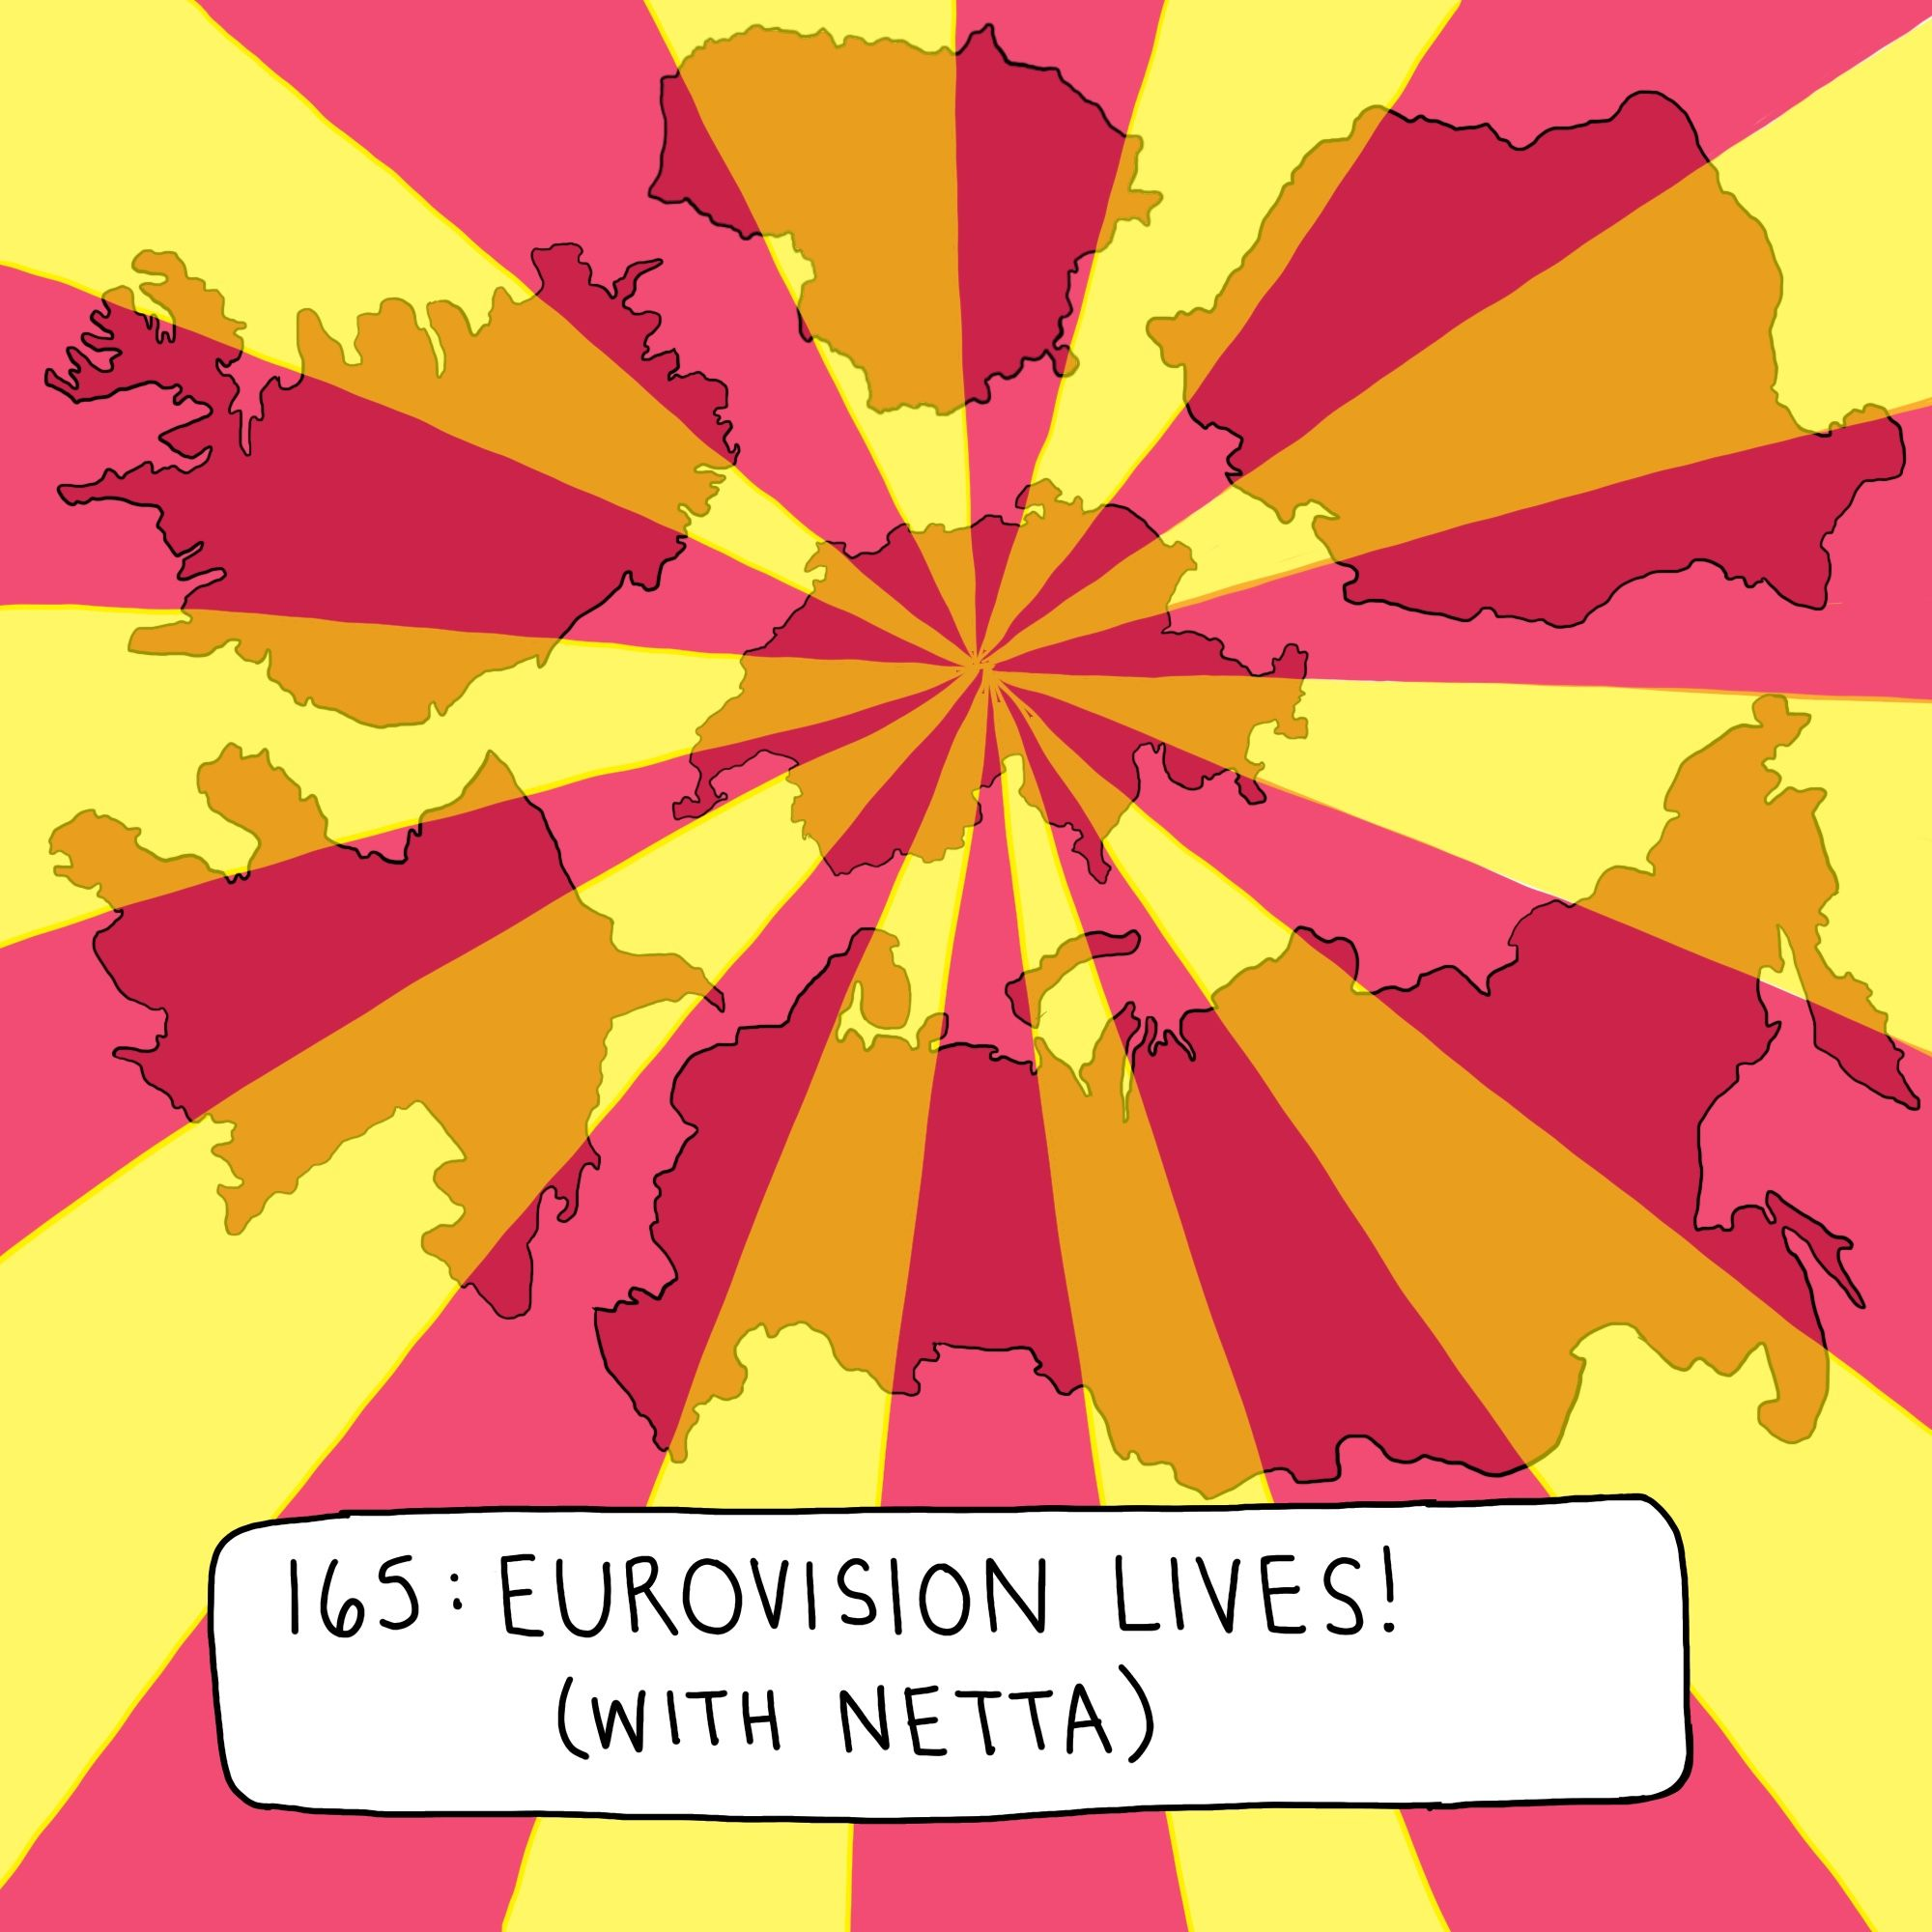 Eurovision Lives! (with Netta)